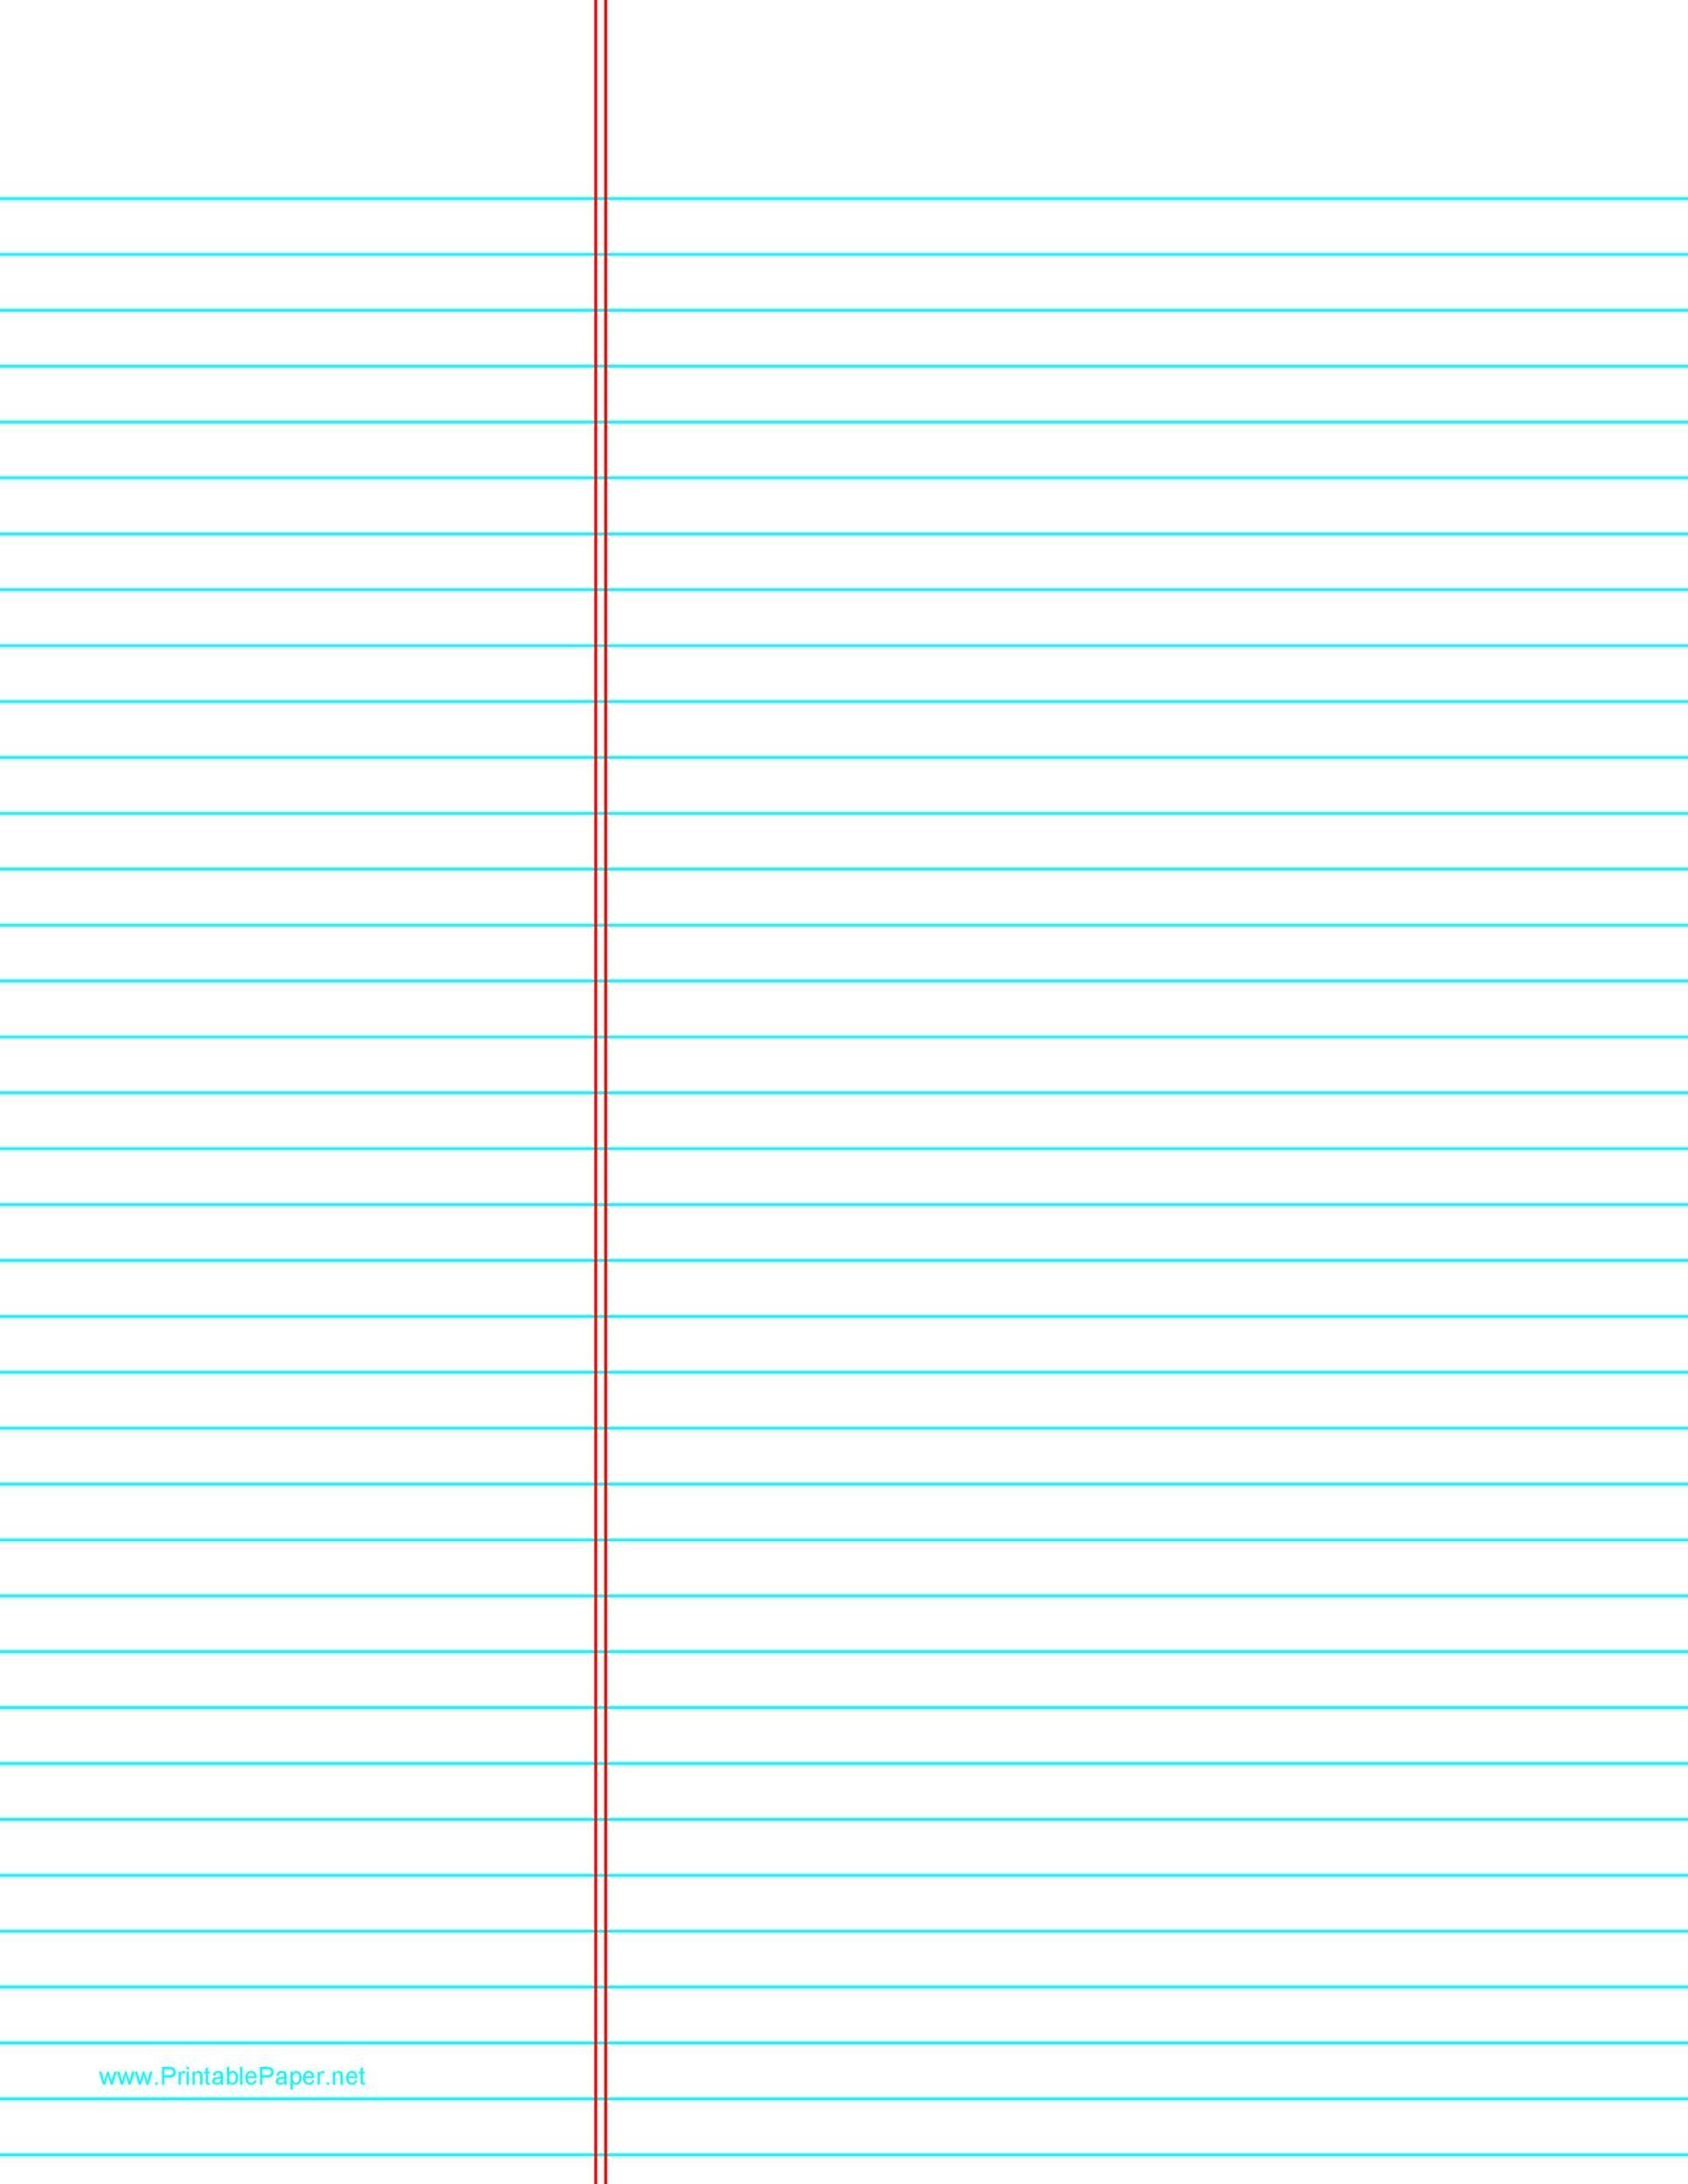 Free lined paper template 26